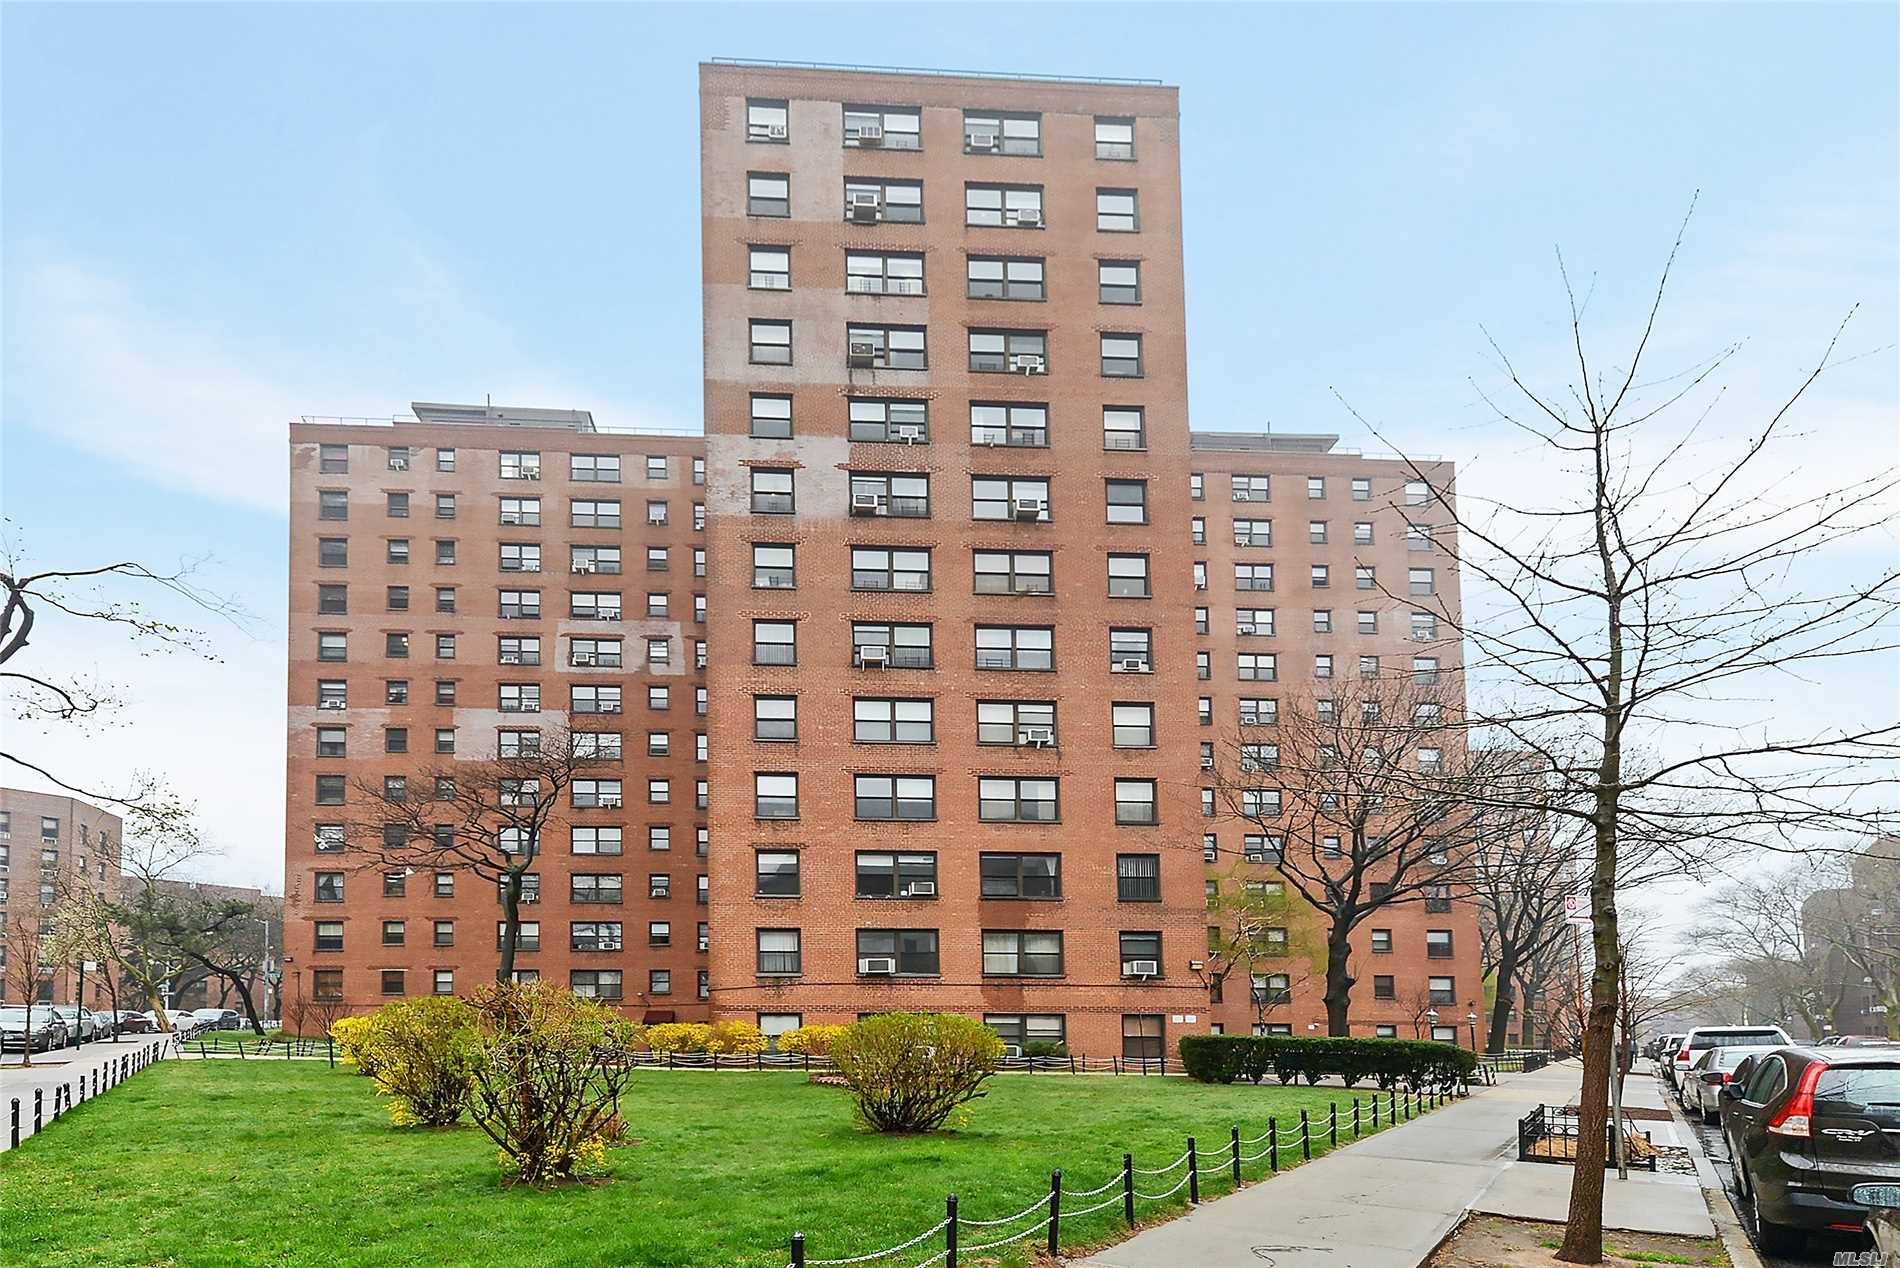 Great Size Studio Apartment On 7th Floor Of Fireproofed Building In Rego Park, Windowed Kitchen With Breakfast Nook, 3 Closets, Full Size Bathroom, Pet Ok, Can Sublet After 2 Years Unlimited Per Board Approval, Shared Laundry On Lobby Level, Close To Public Transportation. Won't Last